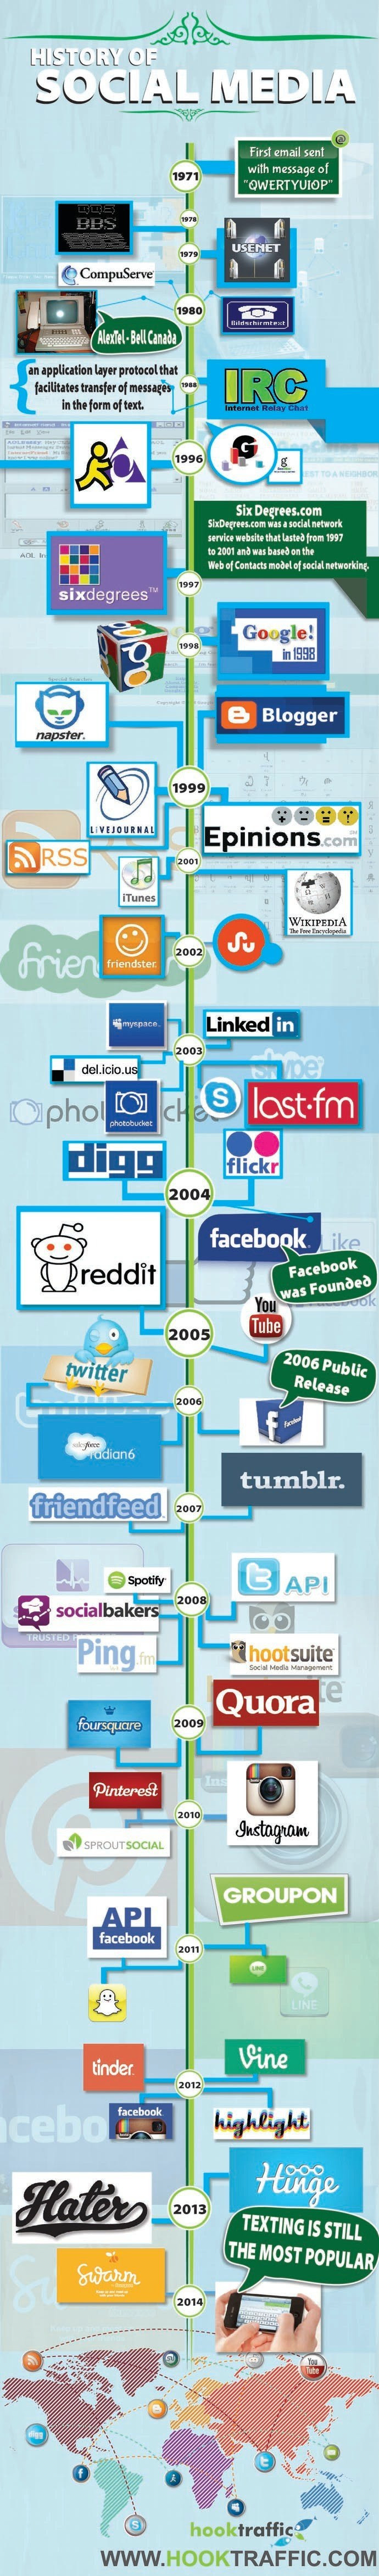 Infographic: History of Social Media #infographic